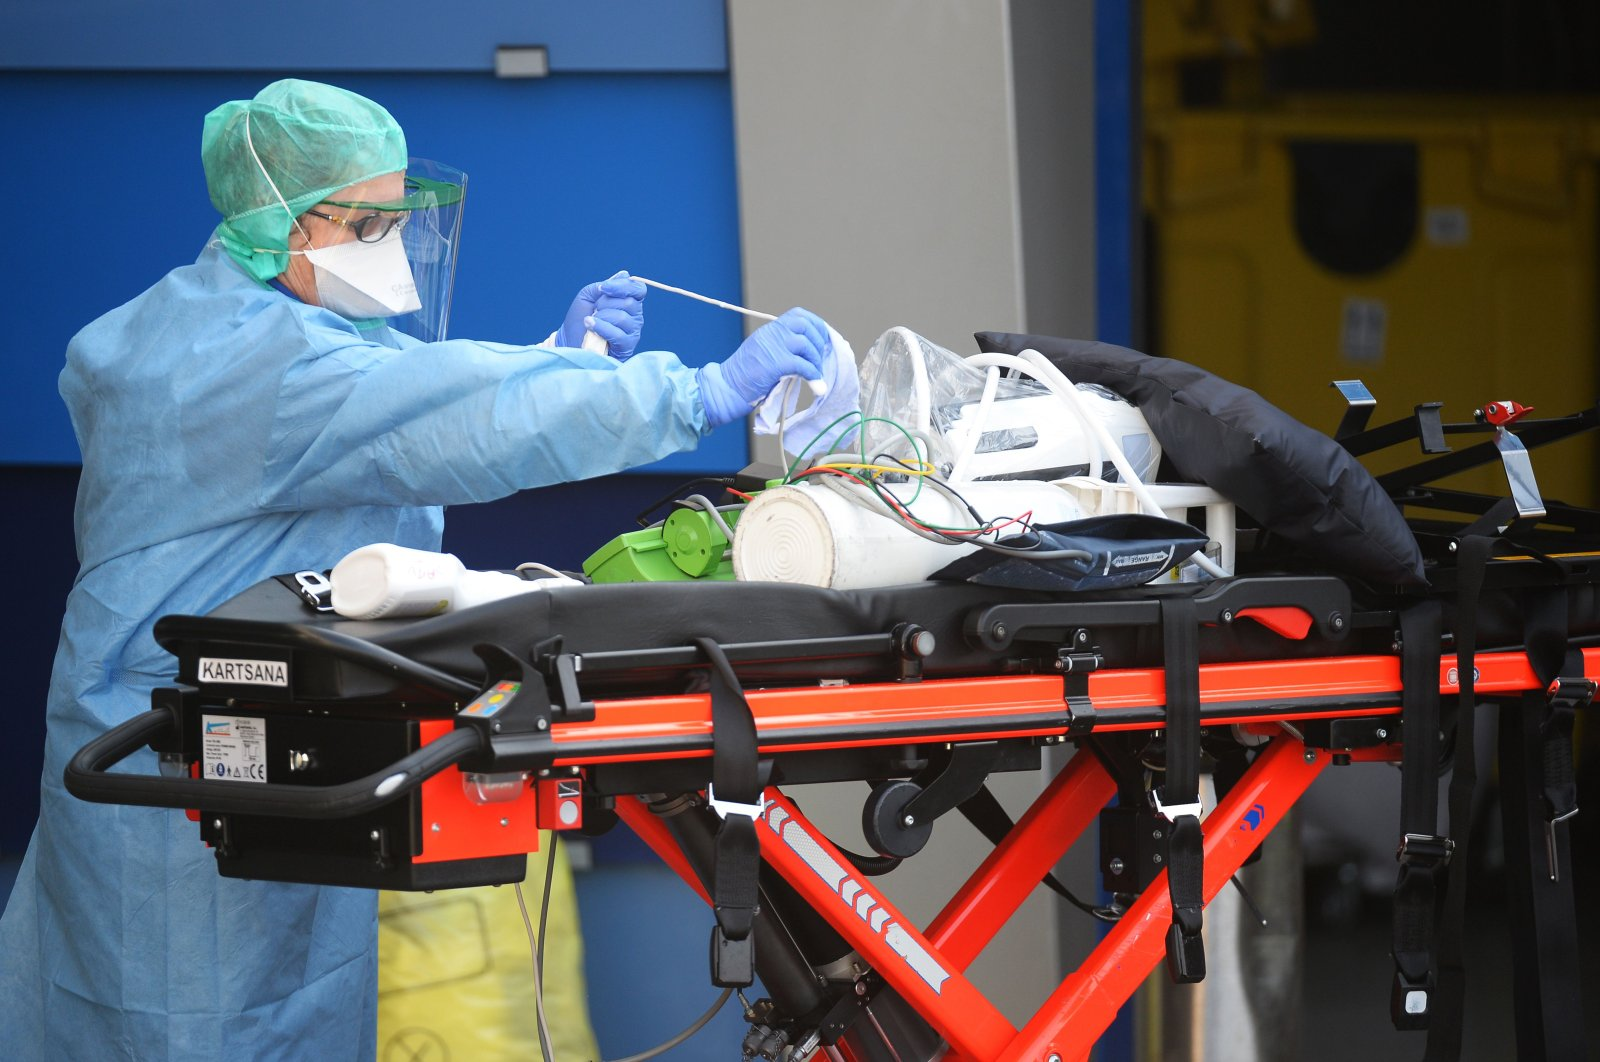 A nurse anesthetist disinfects material of ambulances which carried six coronavirus patients at the Brest hospital, evacuated by air from the French eastern city of Mulhouse, in Brest, western France, on March 24, 2020, on the eight day of a lockdown aimed at curbing the spread of the COVID-19 (novel coronavirus) in France. (AFP Photo)